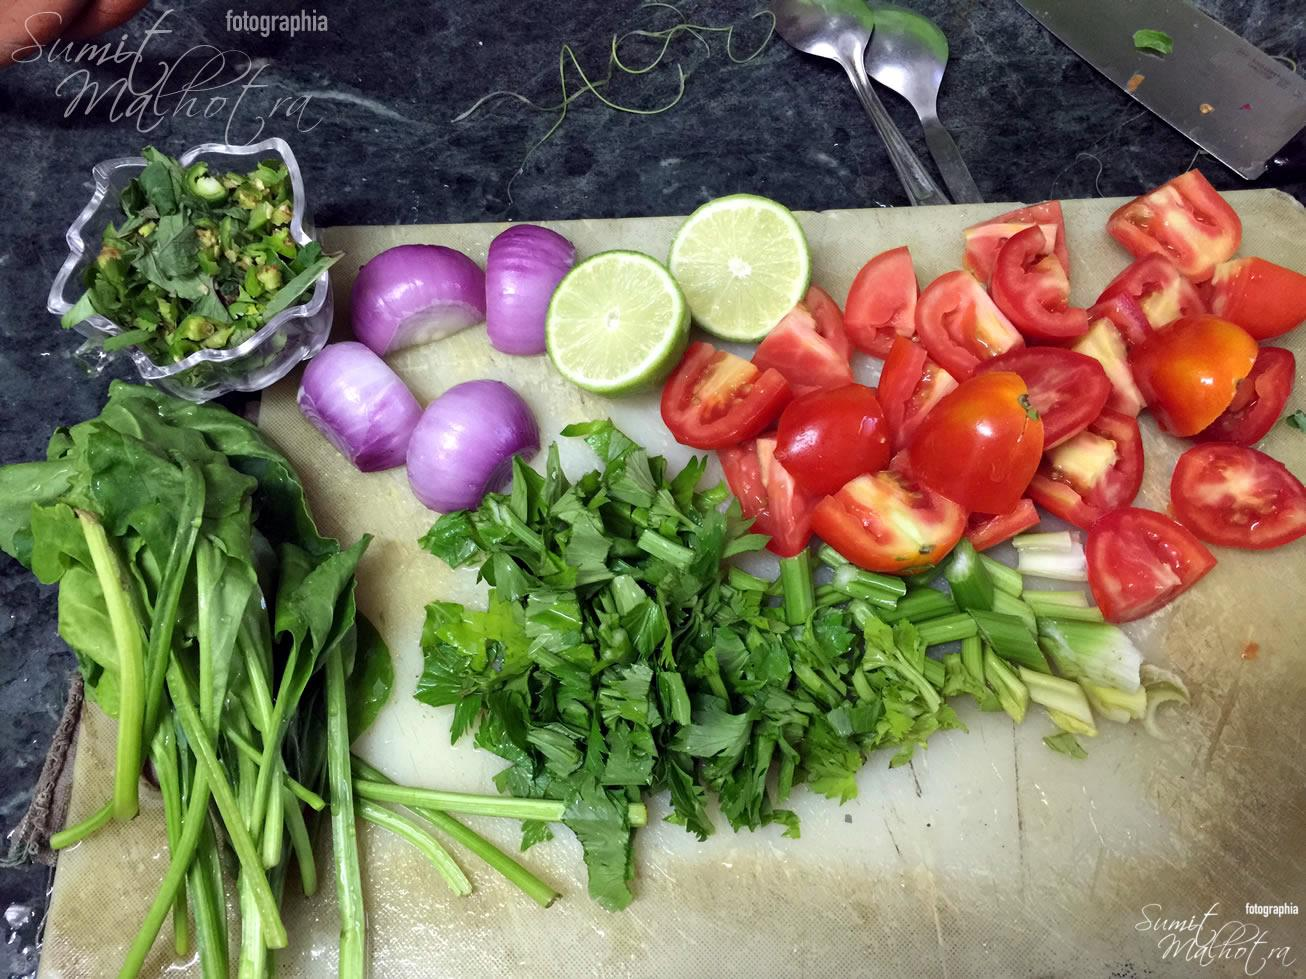 Clean & Chop - Tomatoes, Onions, Celery, Spinach